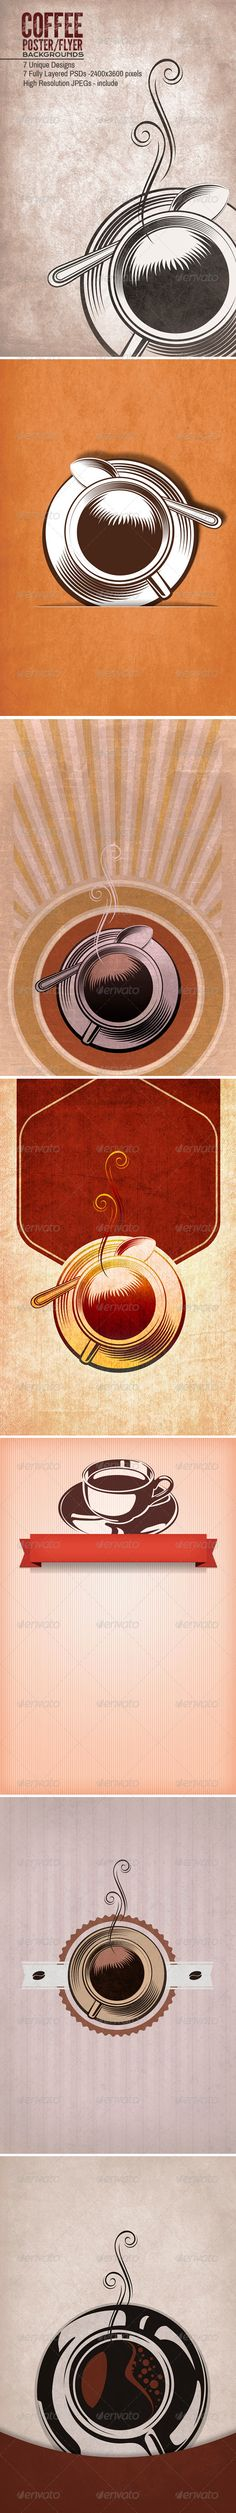 Coffee Tea Poster/Flyers Backgrounds  #GraphicRiver         7 Unique Poster Flyer Backgrounds,  	 8×12 inches -2400×3600 pixels  	 7 Fully Layered PSDs  	 7 High Resolution JPGs  	 fully editable  	 Please Rate it!     Created: 20June13 GraphicsFilesIncluded: PhotoshopPSD #JPGImage HighResolution: Yes Layered: Yes MinimumAdobeCSVersion: CS PixelDimensions: 2400x3600 PrintDimensions: 8x12 Tags: coffee #tea